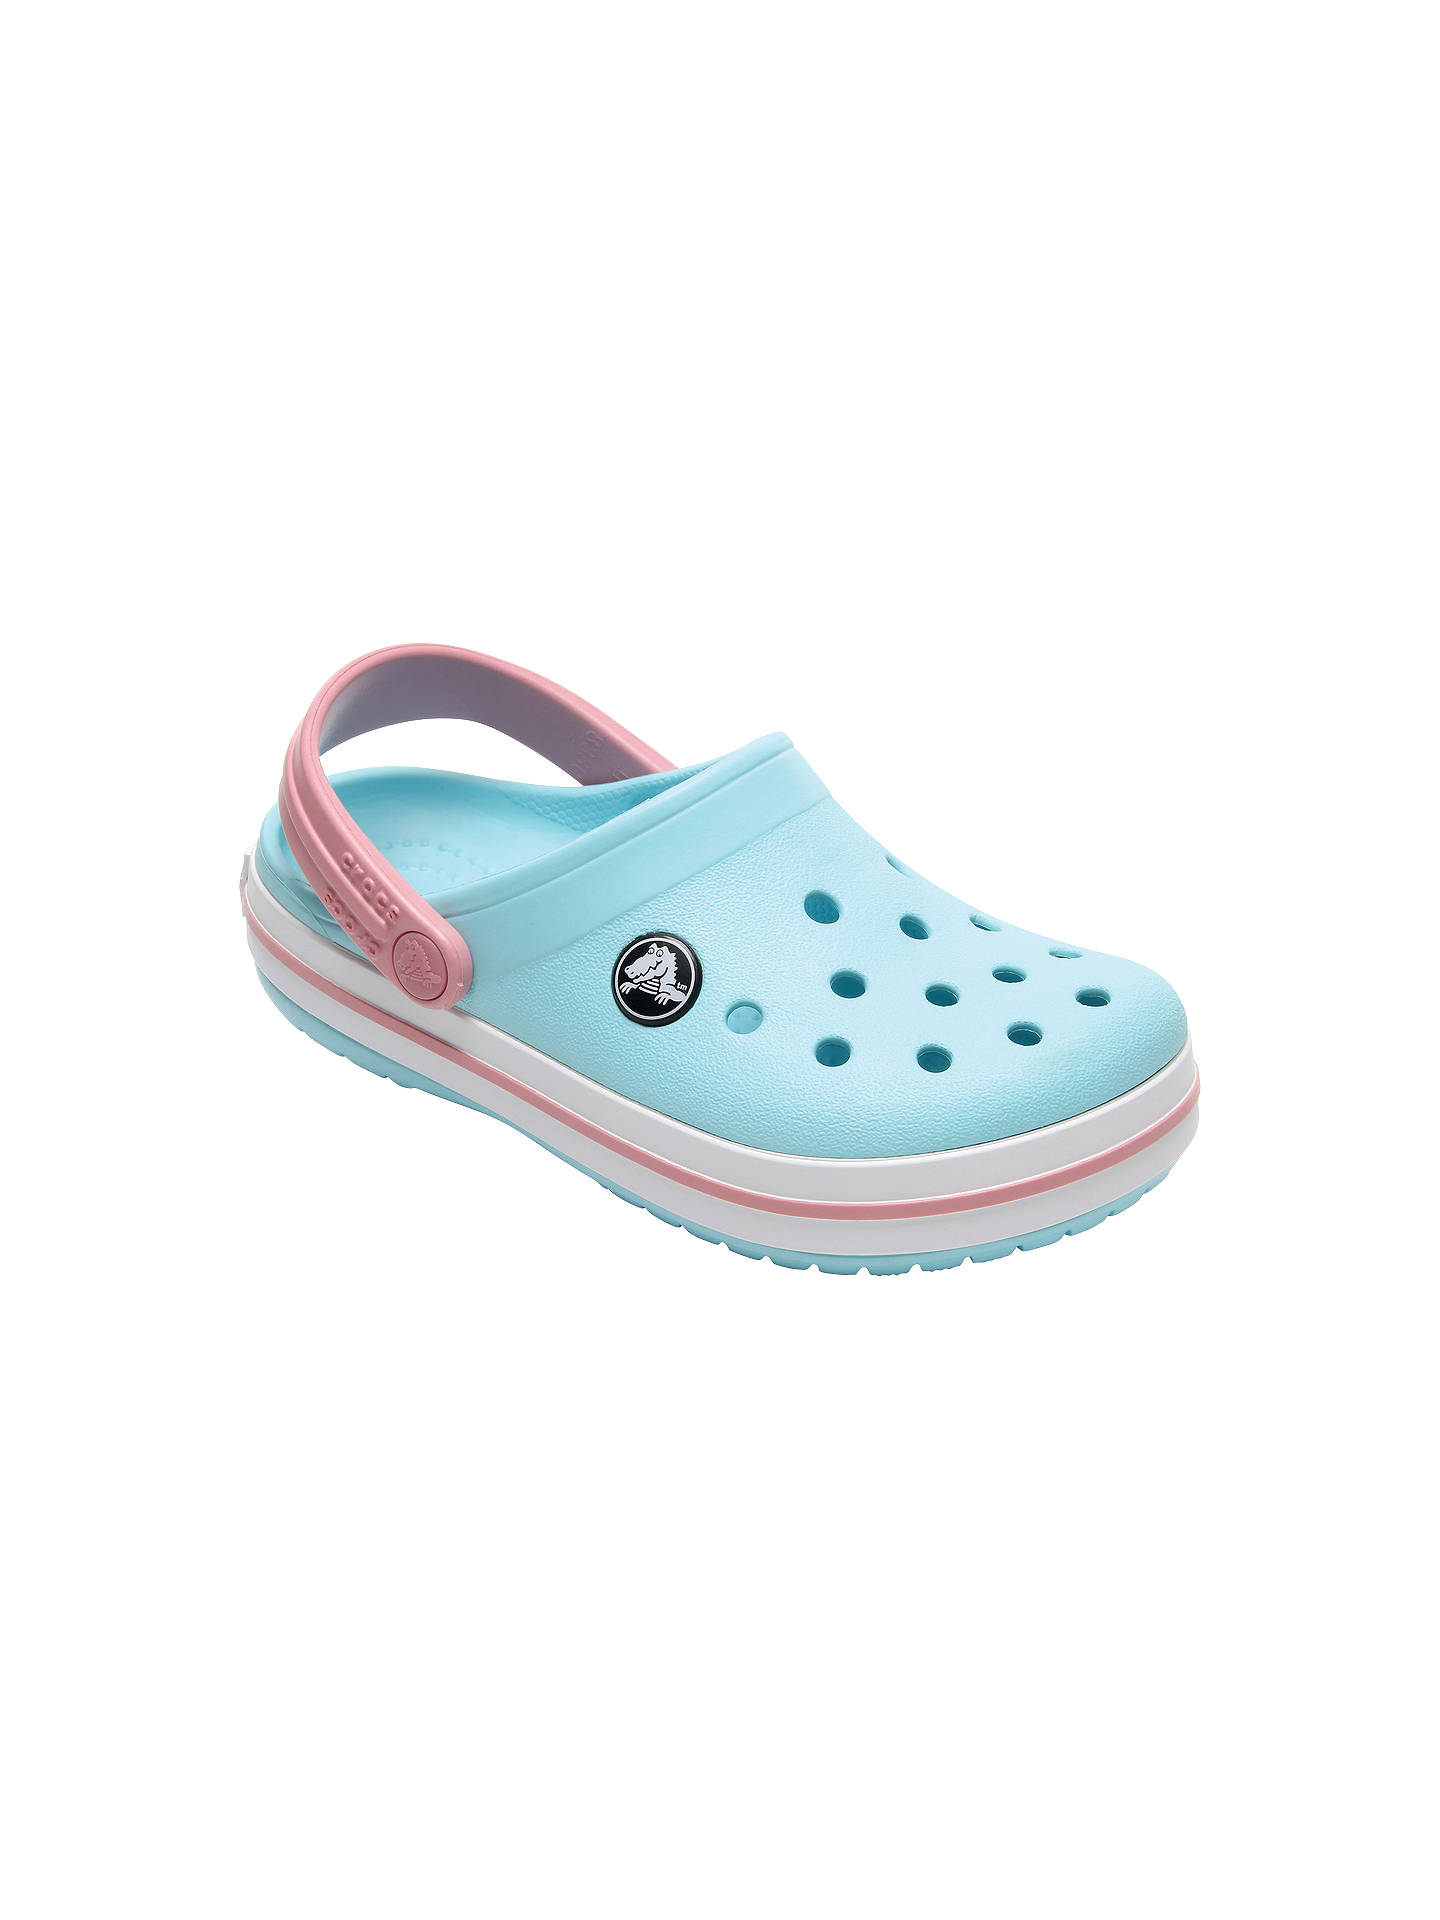 27f6f1a84 Buy Crocs Children s Crocband Clogs